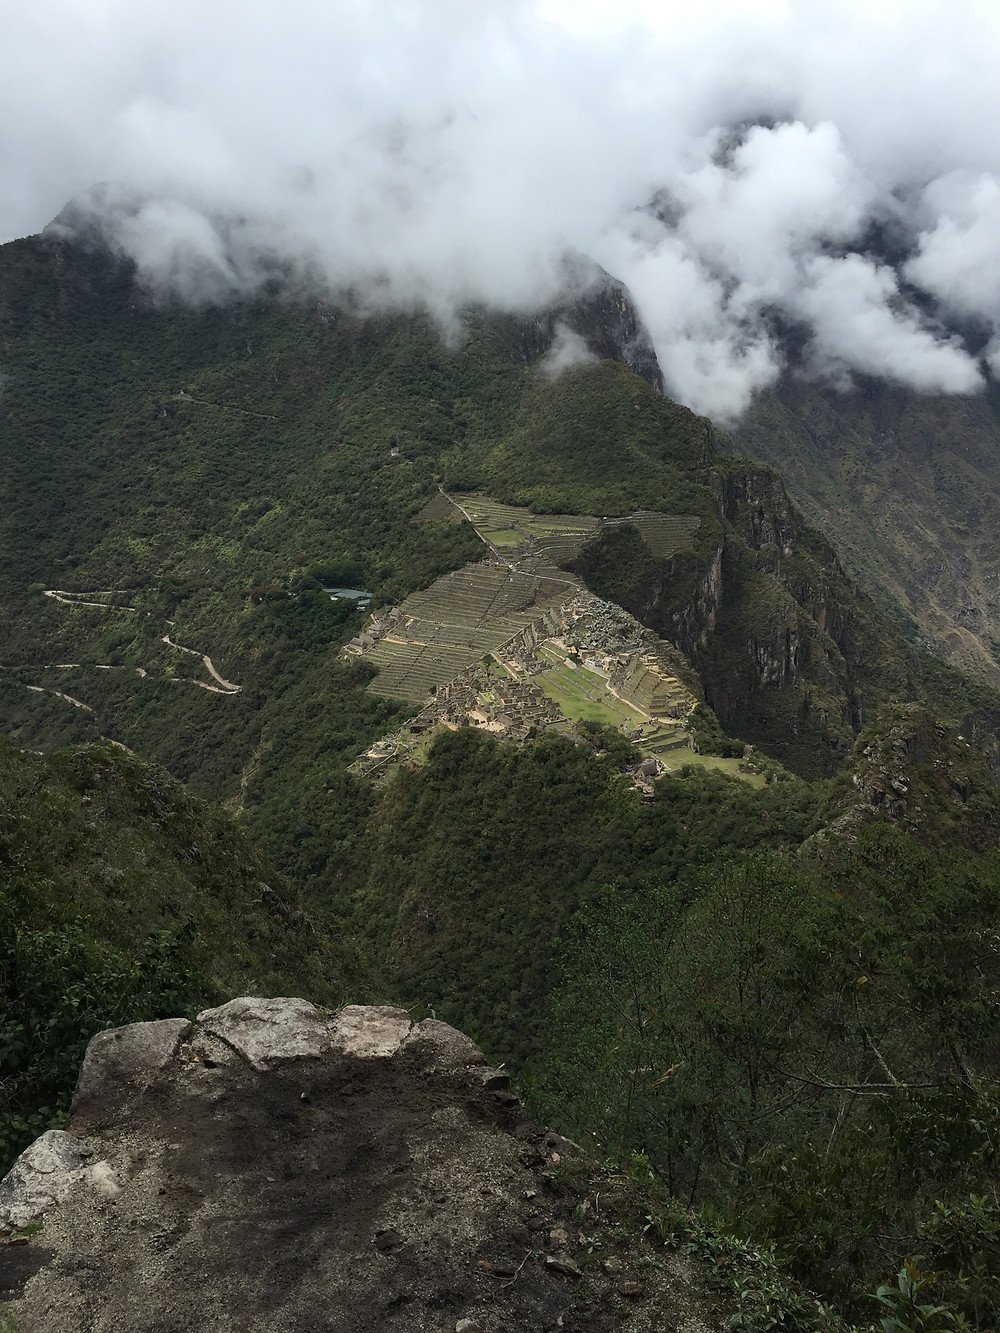 The sensational view from the top of Wayna Picchu looking over Machu Picchu.